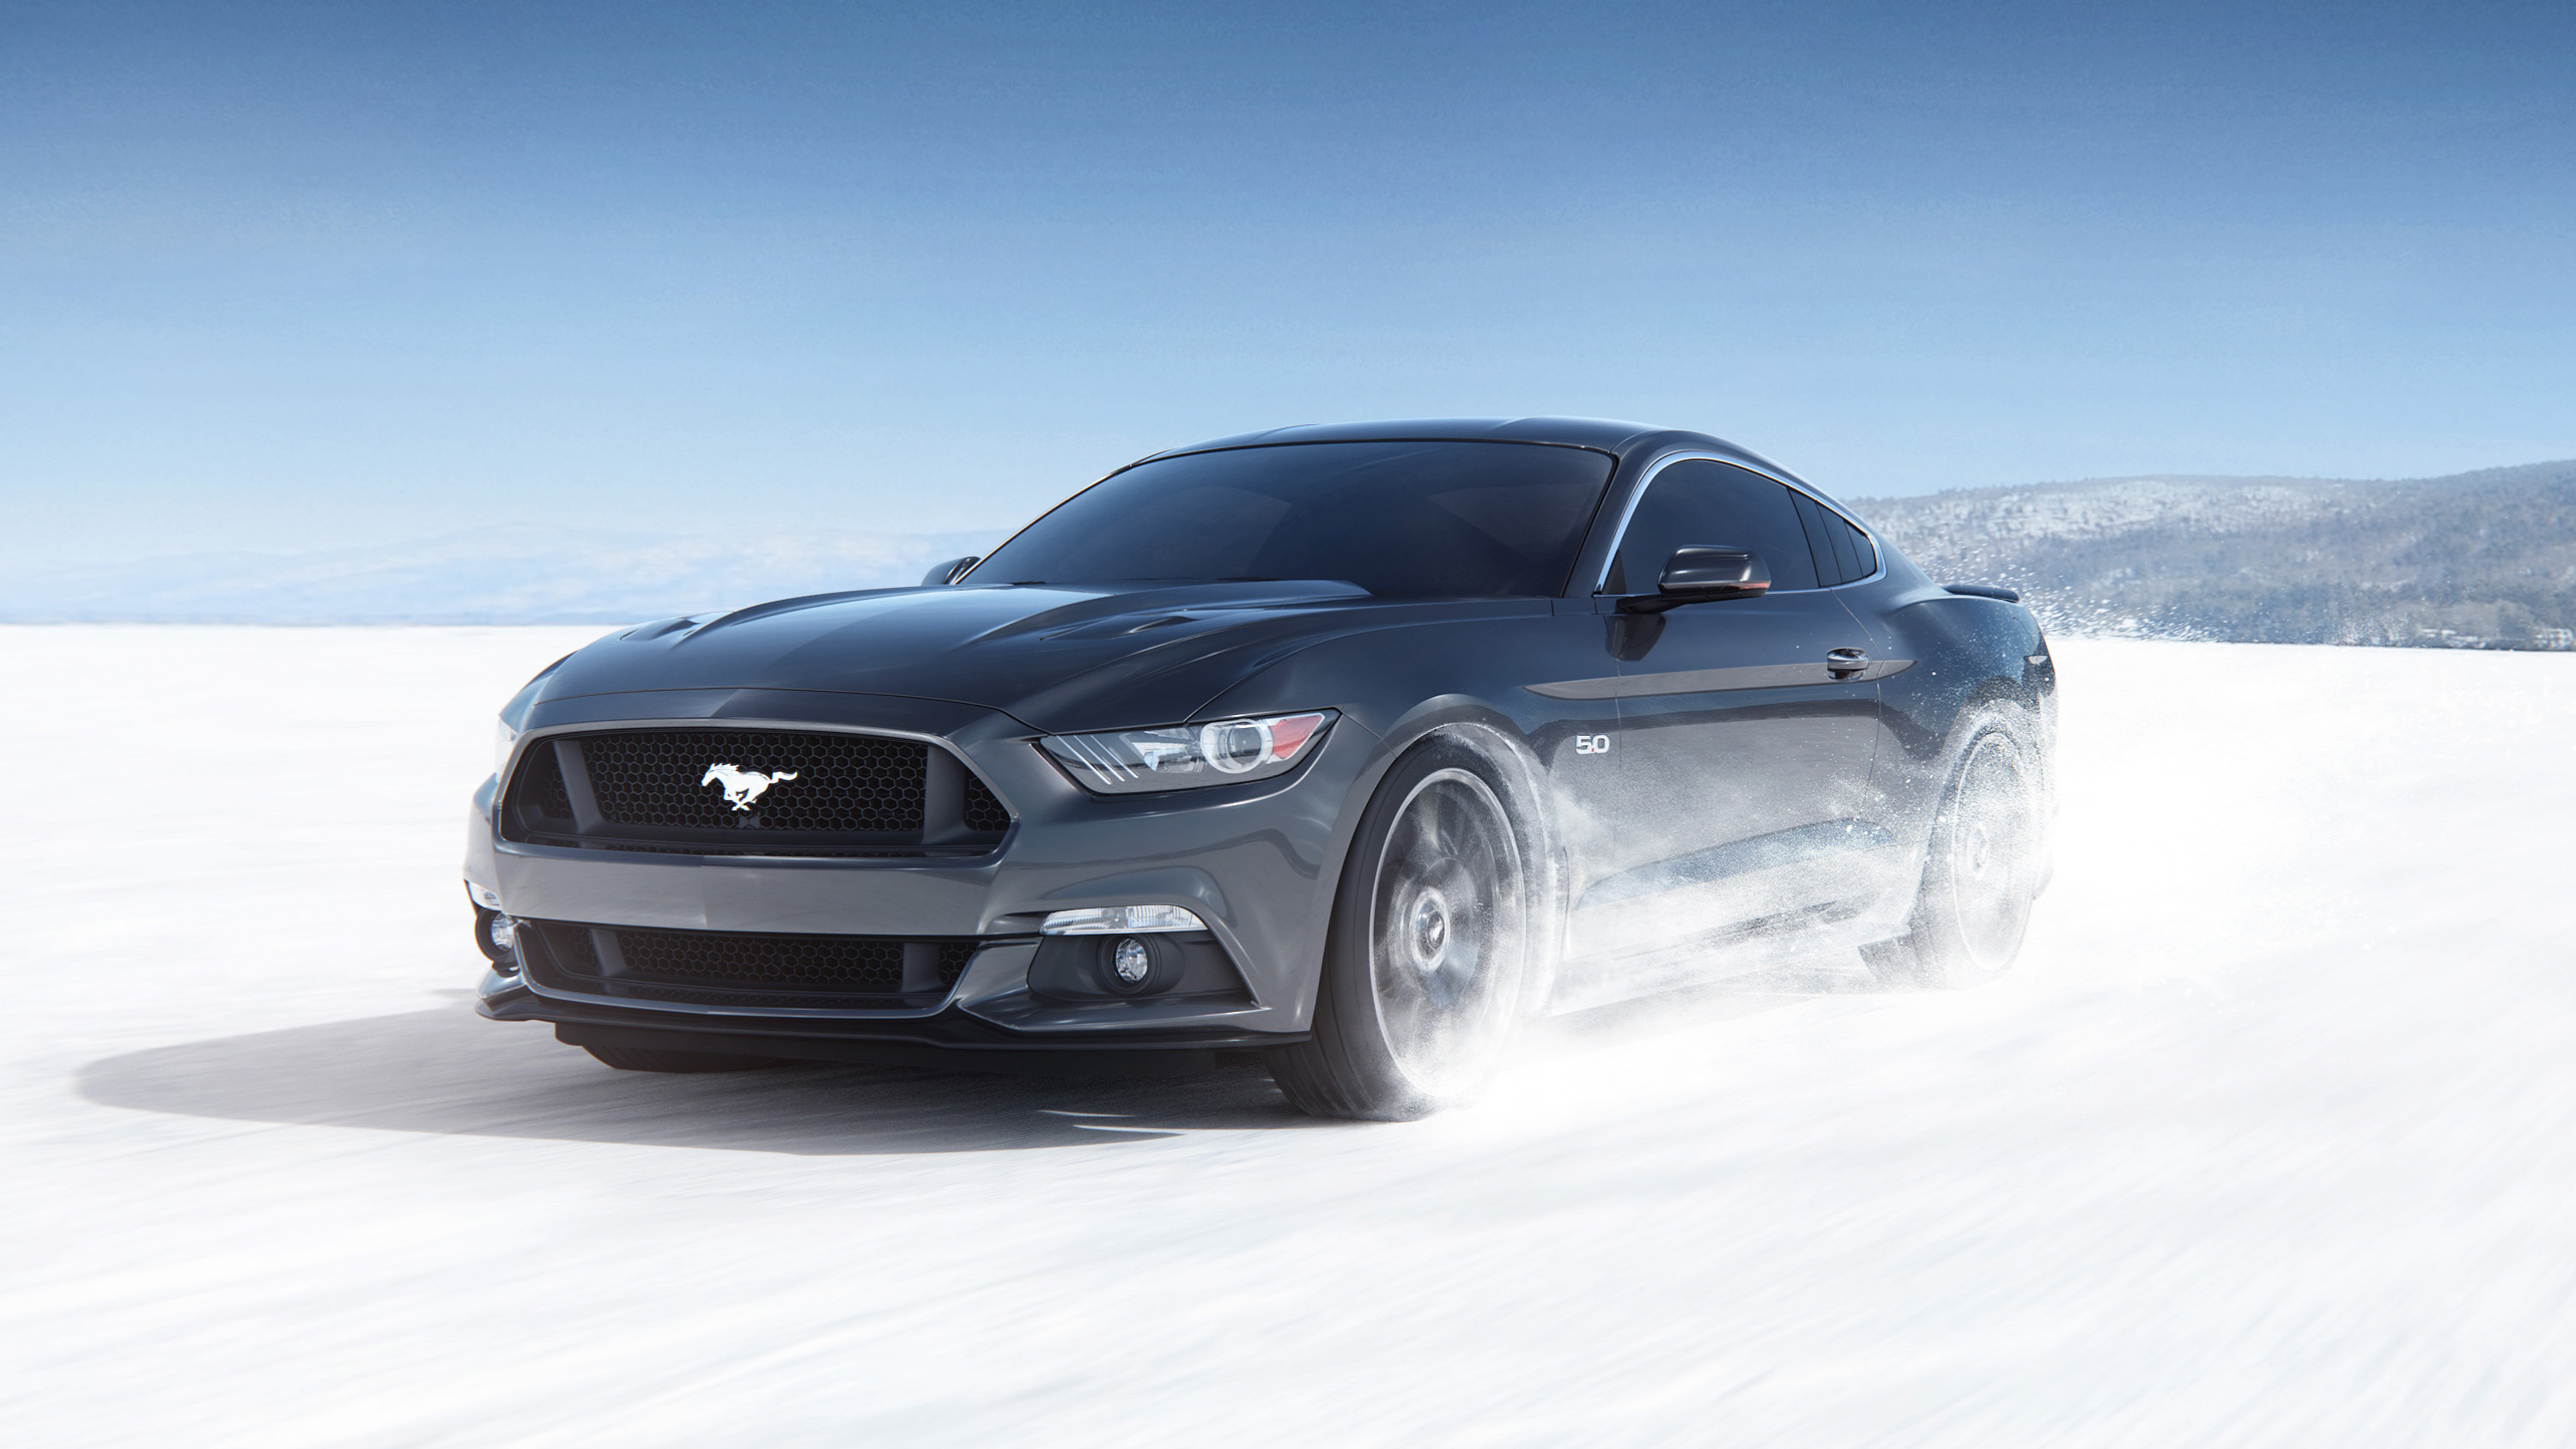 Res: 3000x1688, Ford Mustang 2018 4K